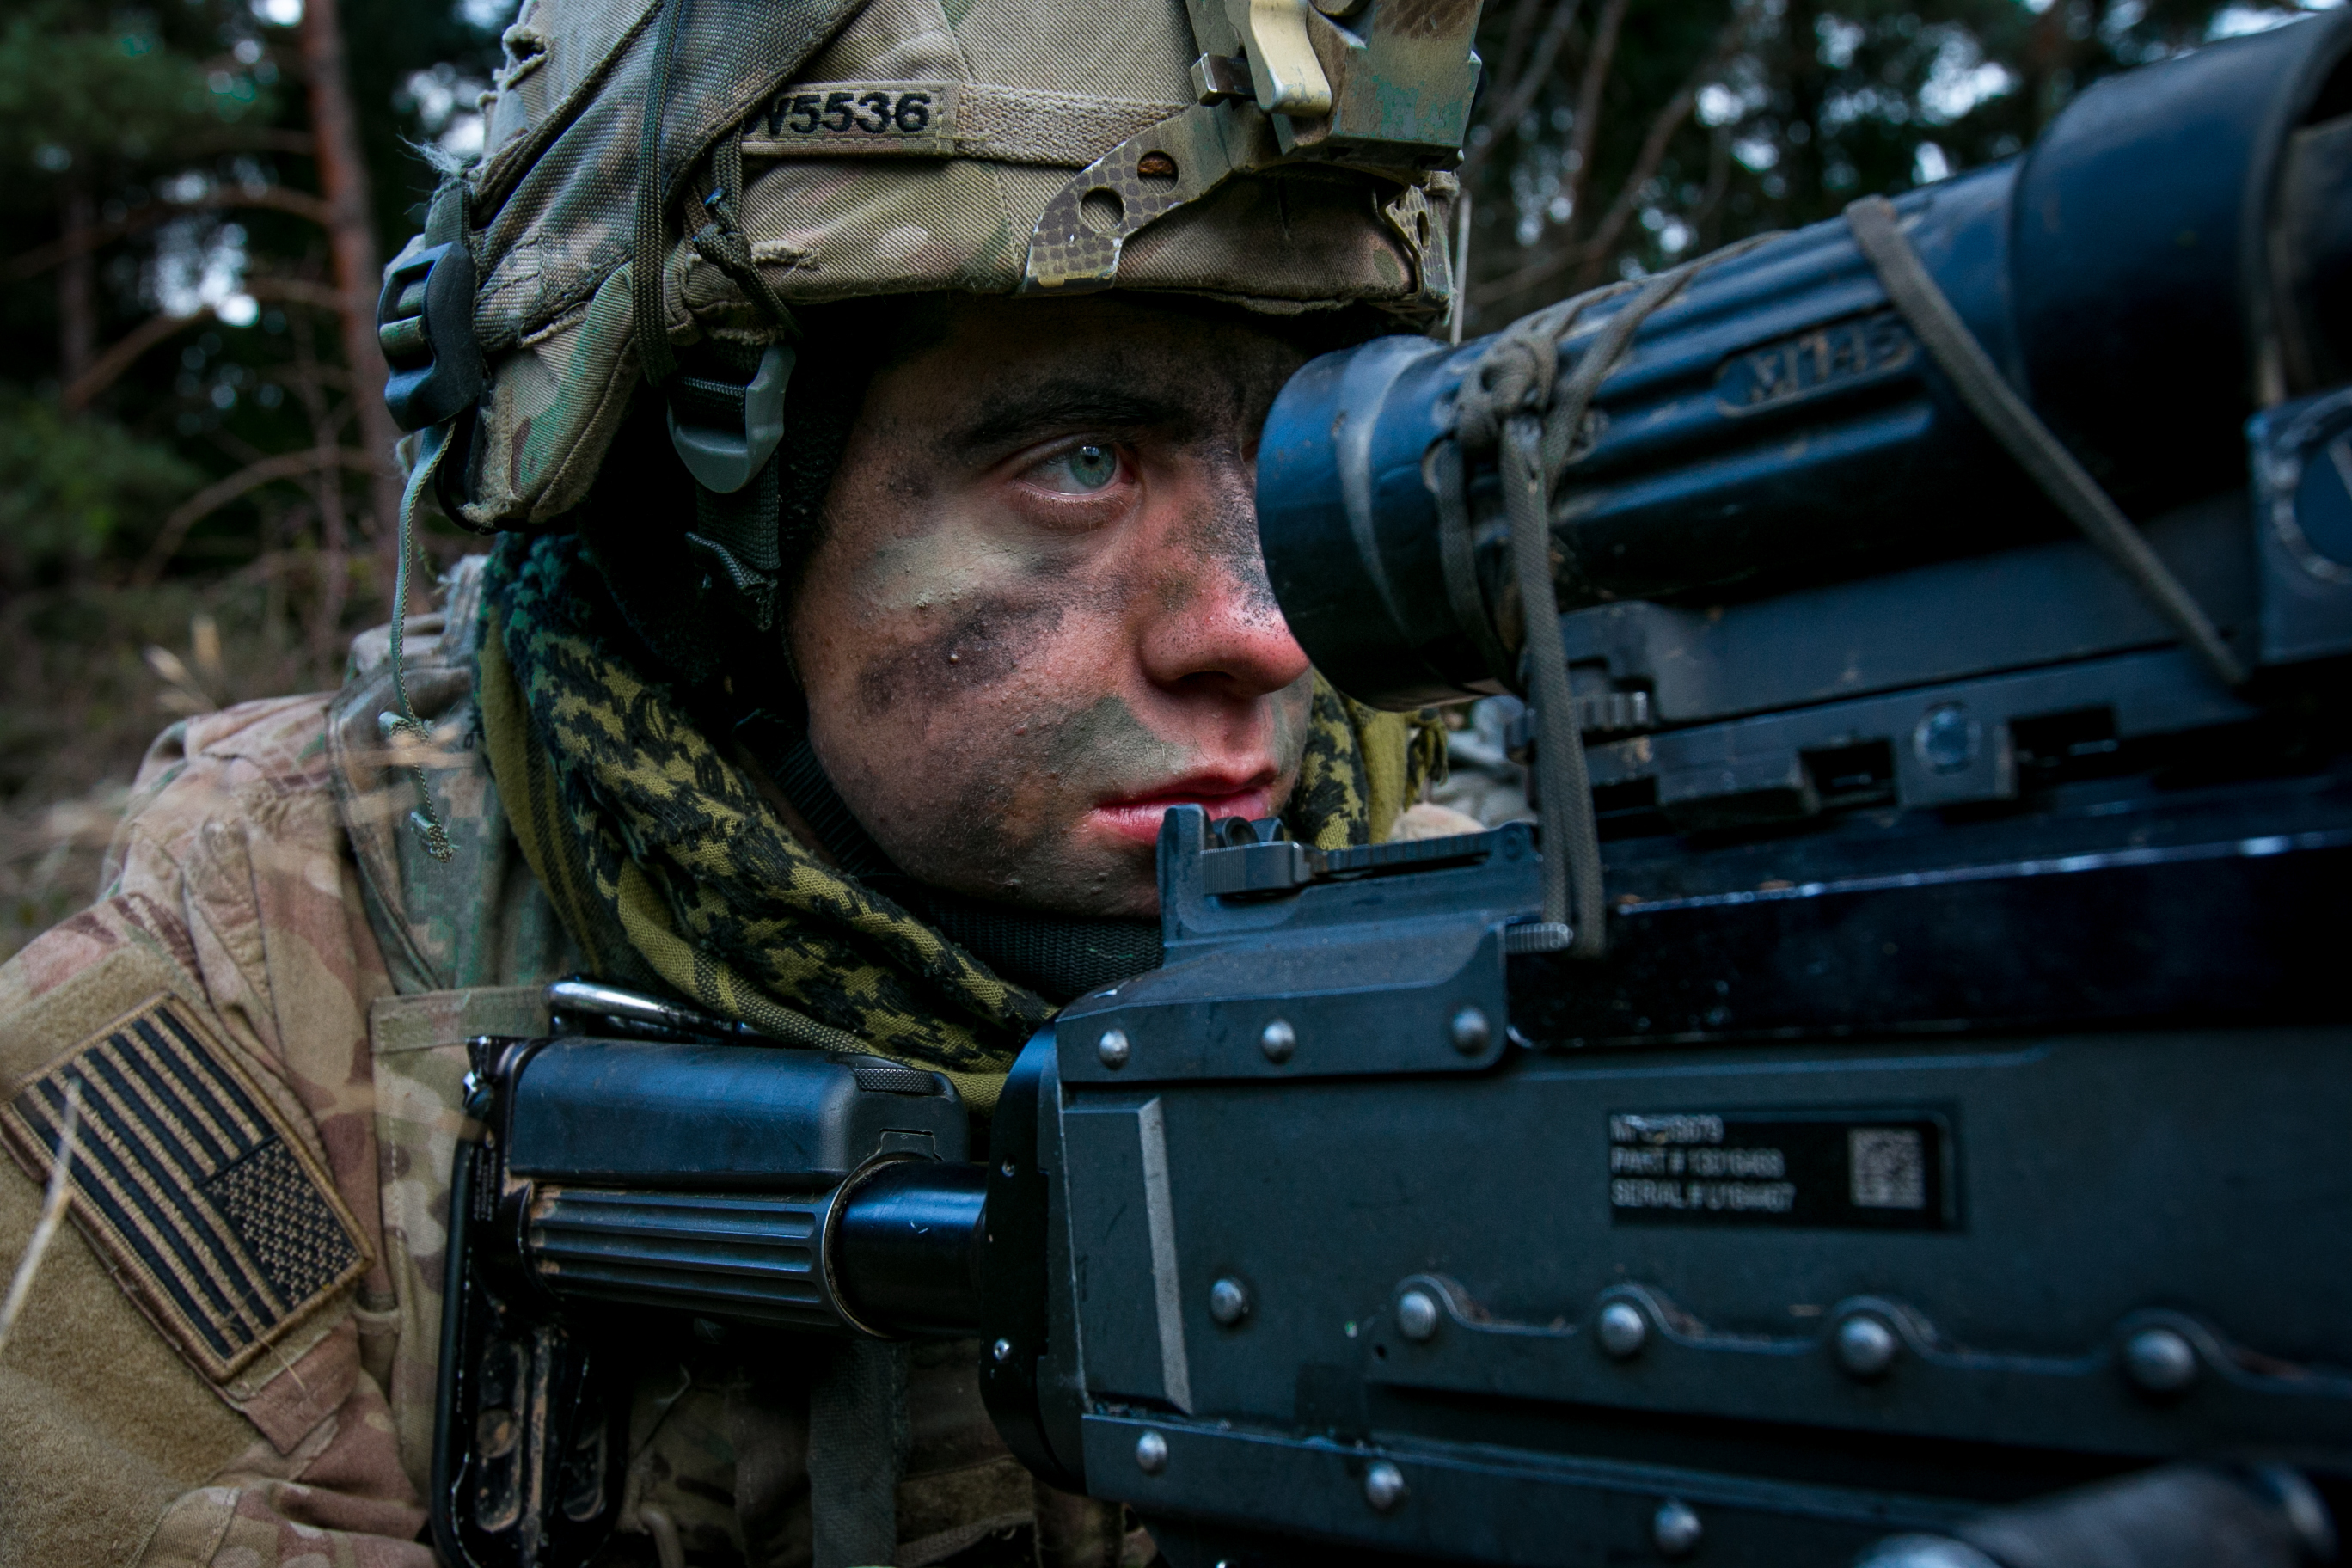 A Soldier assigned to 2nd Battalion, 70th Armor Regiment, 2nd Armored Brigade Combat Team, 1st Infantry Division from Fort Riley, Kansas scans the terrain over the sights of his M-249 machine gun Nov. 18, 2017 during an Allied Spirit VII training event in Grafenwoehr, Germany. The U.S. Army, along with its allies and partners, continues to forge a dynamic presence with a powerful land network that simultaneously deters aggression and assures the security of the region. Approximately 3,700 service members from 13 nations gathered in 7th Army Training Command's Hohenfels Training Area in southeastern Germany to participate in the seventh iteration of Allied Spirit which is scheduled for Oct. 30 - Nov. 22, 2017. (U.S. Army photo by Spc. Dustin D. Biven / 22nd Mobile Public Affairs Detachment)